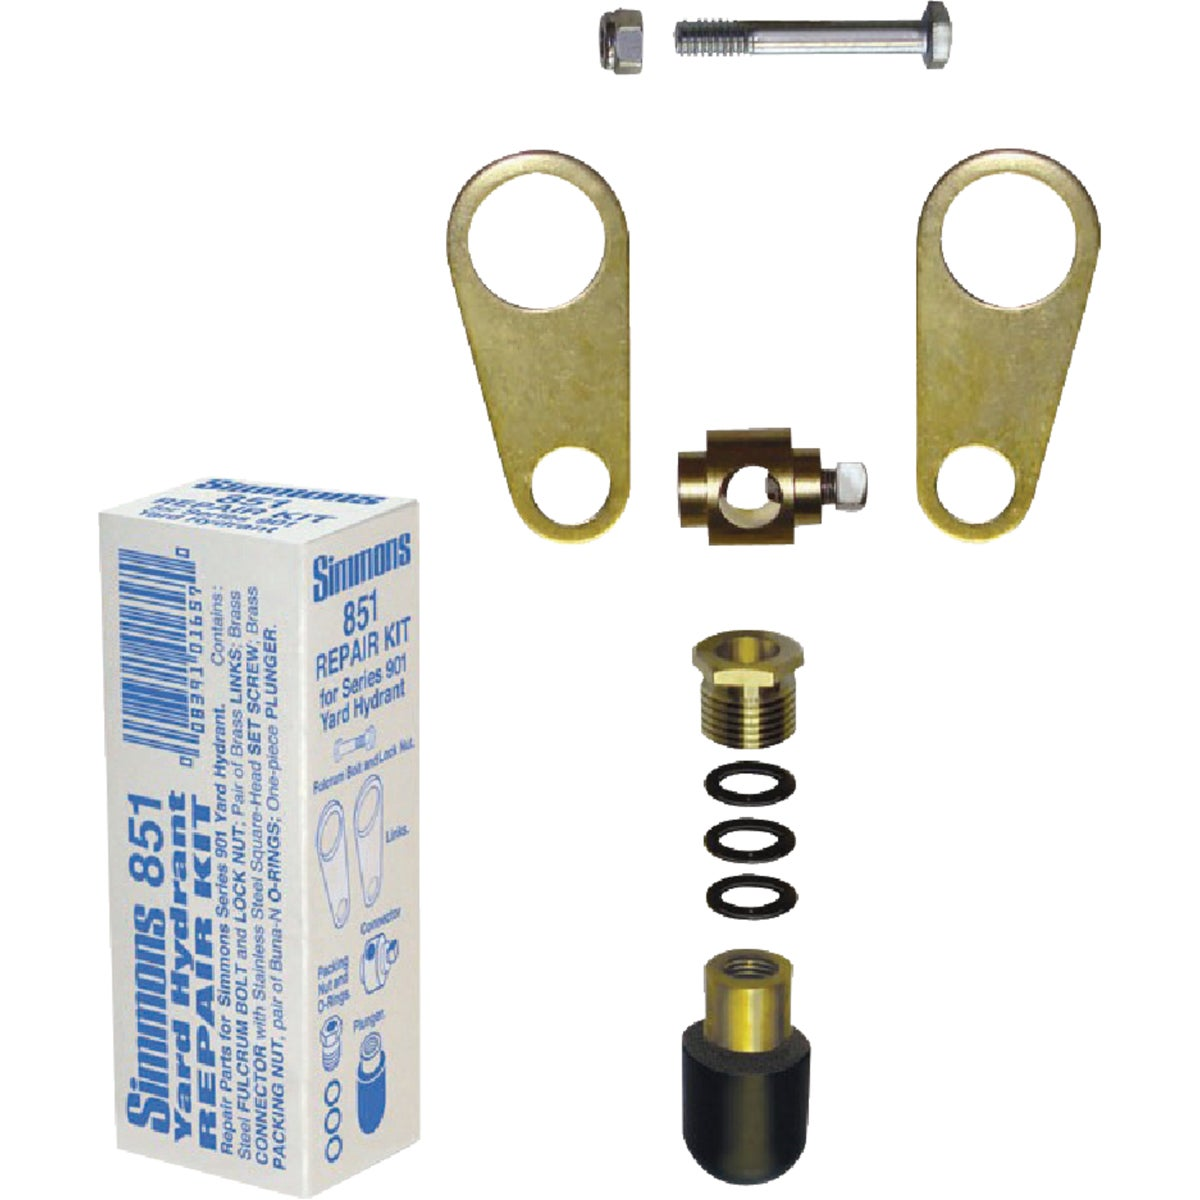 Simmons Hydrant Parts Kit, 851